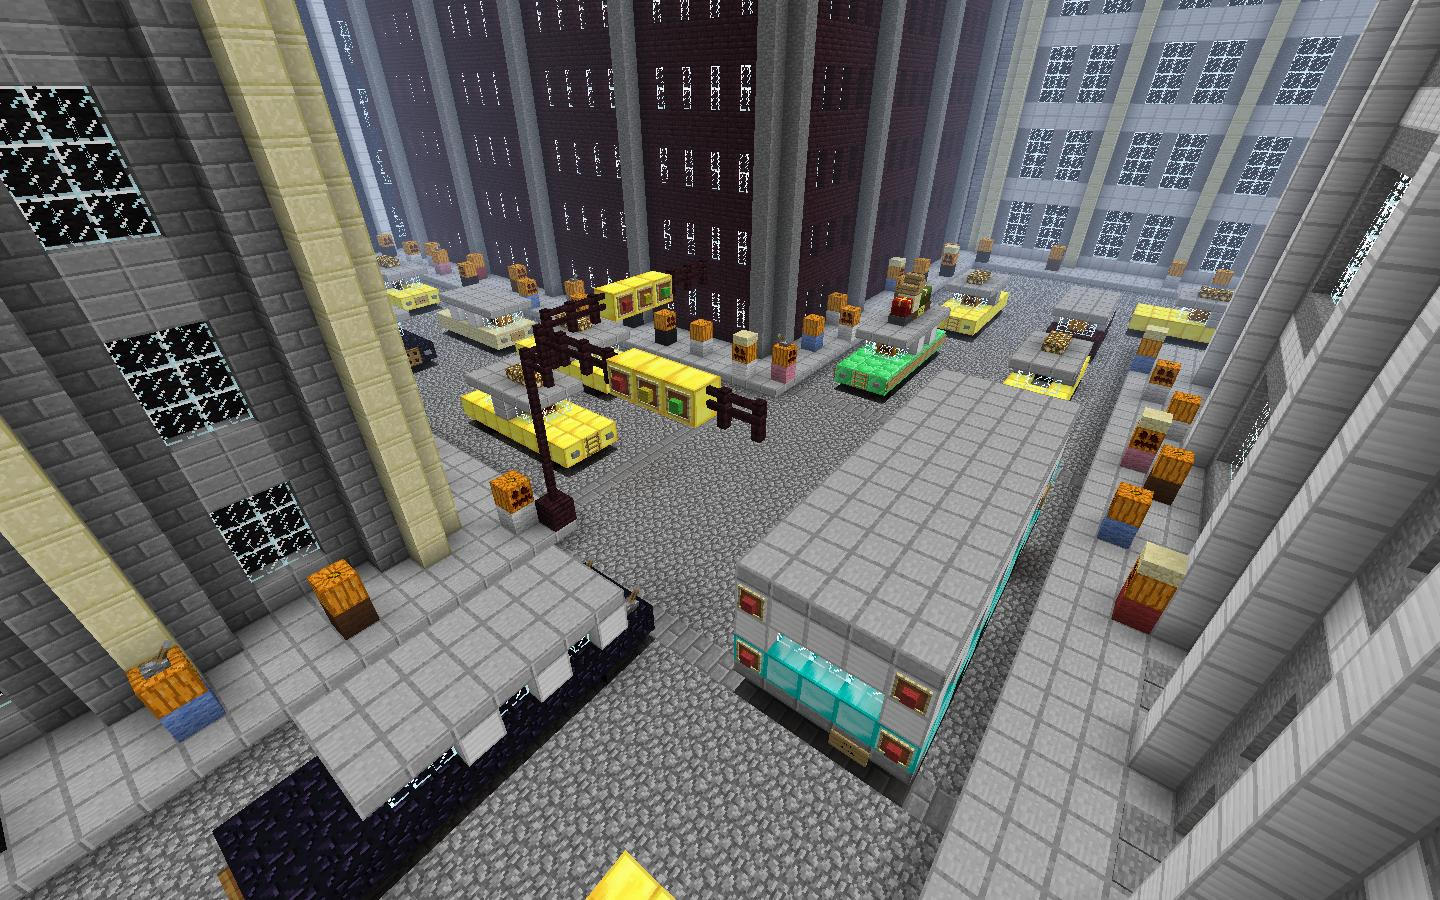 http://minecraft-forum.net/wp-content/uploads/2013/08/3ae93__A-Day-in-Tuscarora-Map-2.jpg